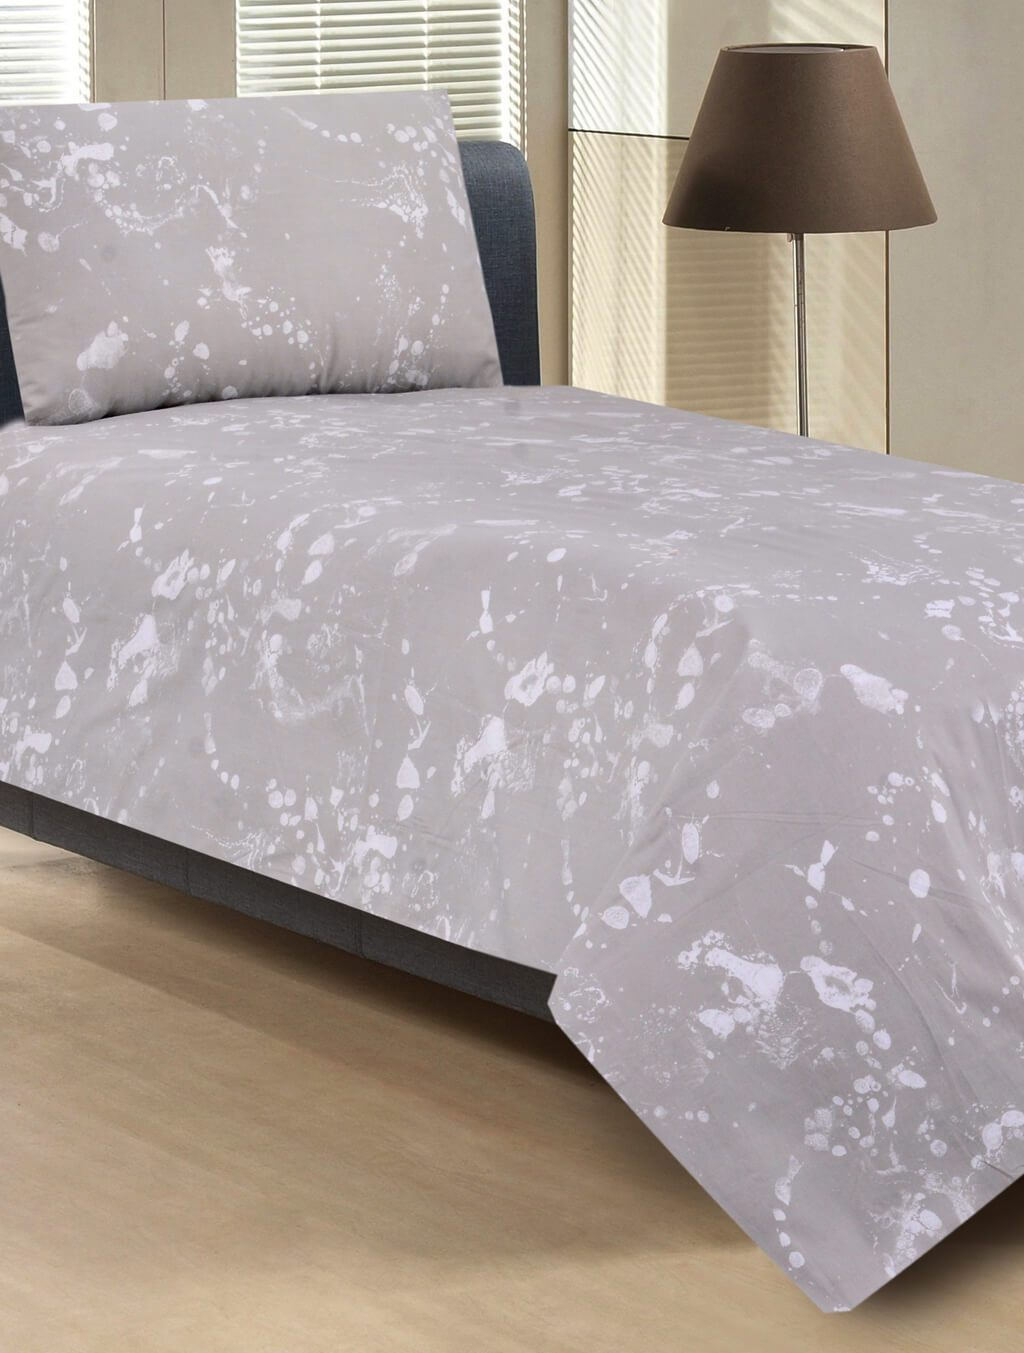 BED SHEET R2G 17083 Printed Range 144 TC HOMBEDROO